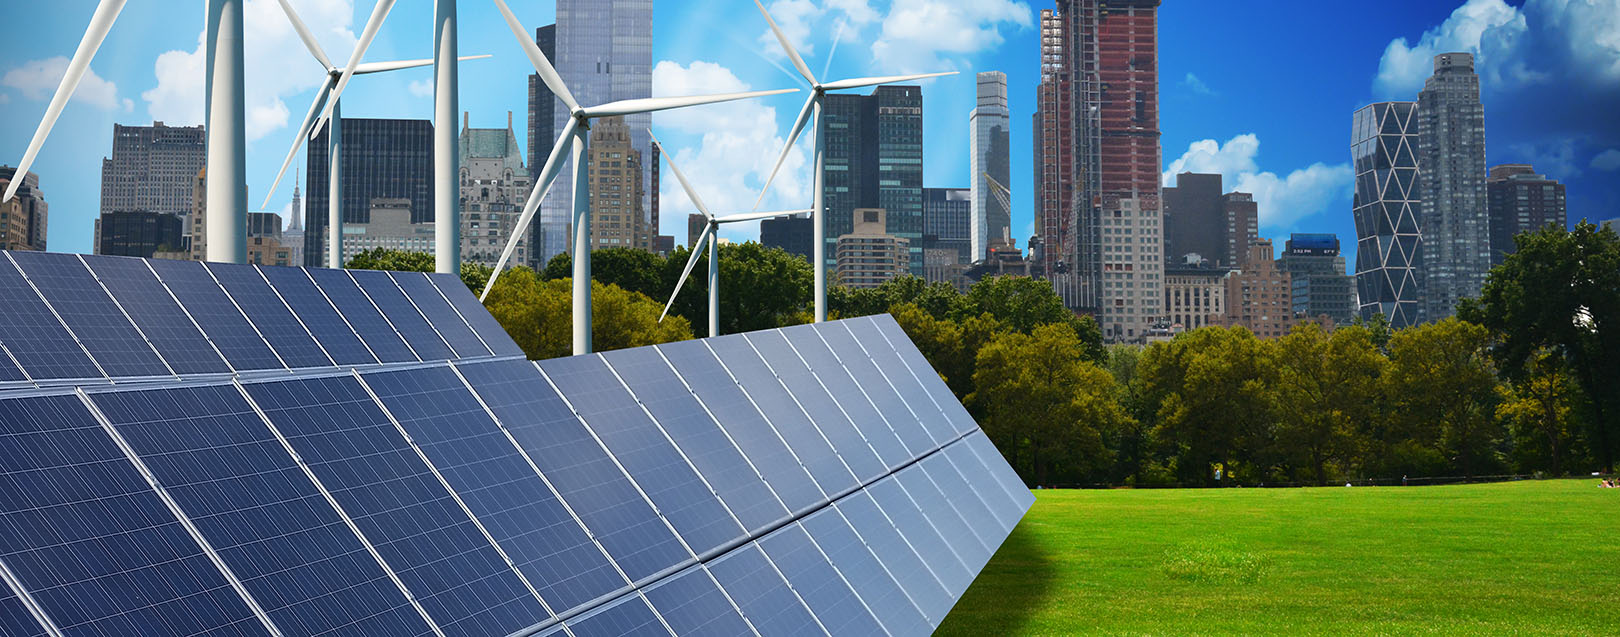 UN lauds global progress in green energy, calls for more action